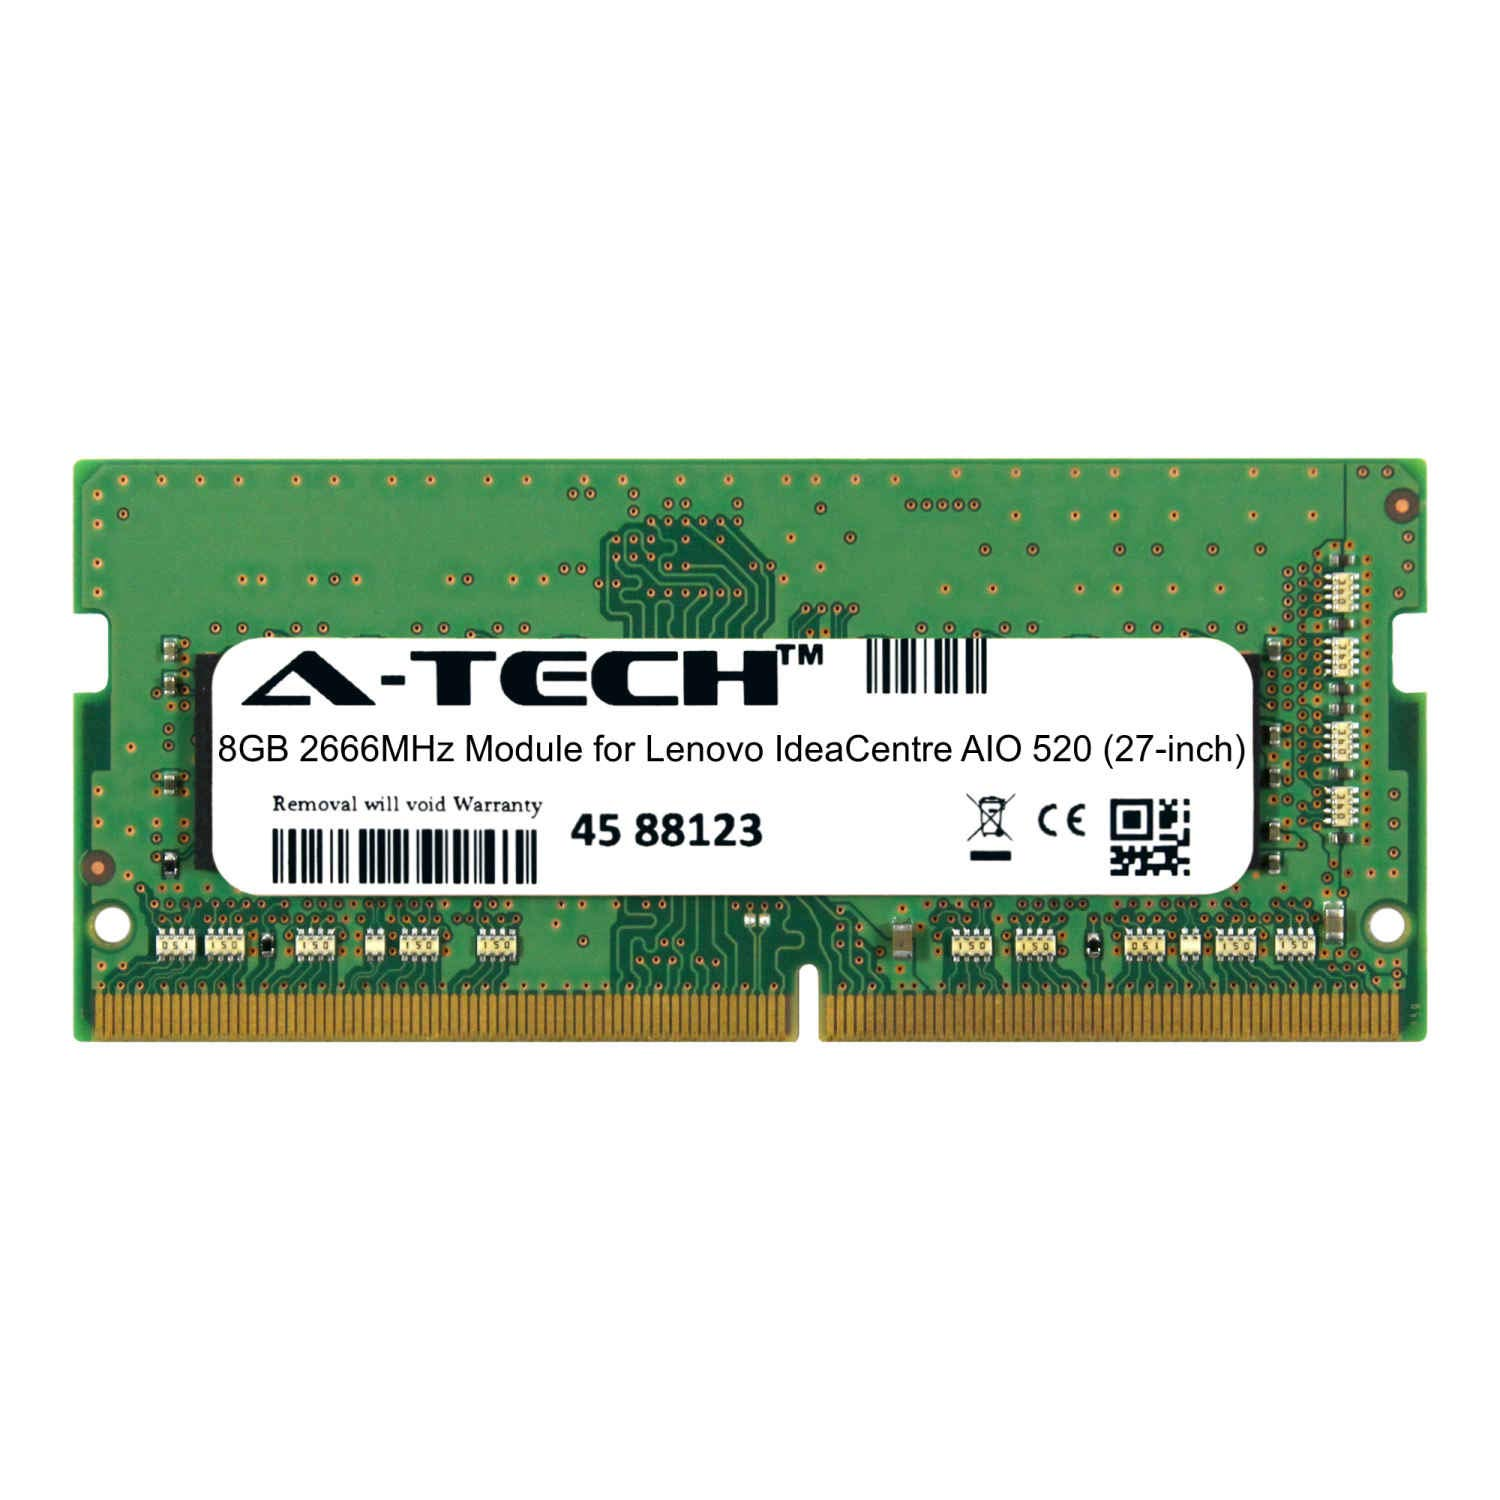 A-Tech 8GB Module for Lenovo IdeaCentre AIO 520 (27-inch) All-in-One Compatible DDR4 2666Mhz Memory Ram (ATMS276824A25978X1)